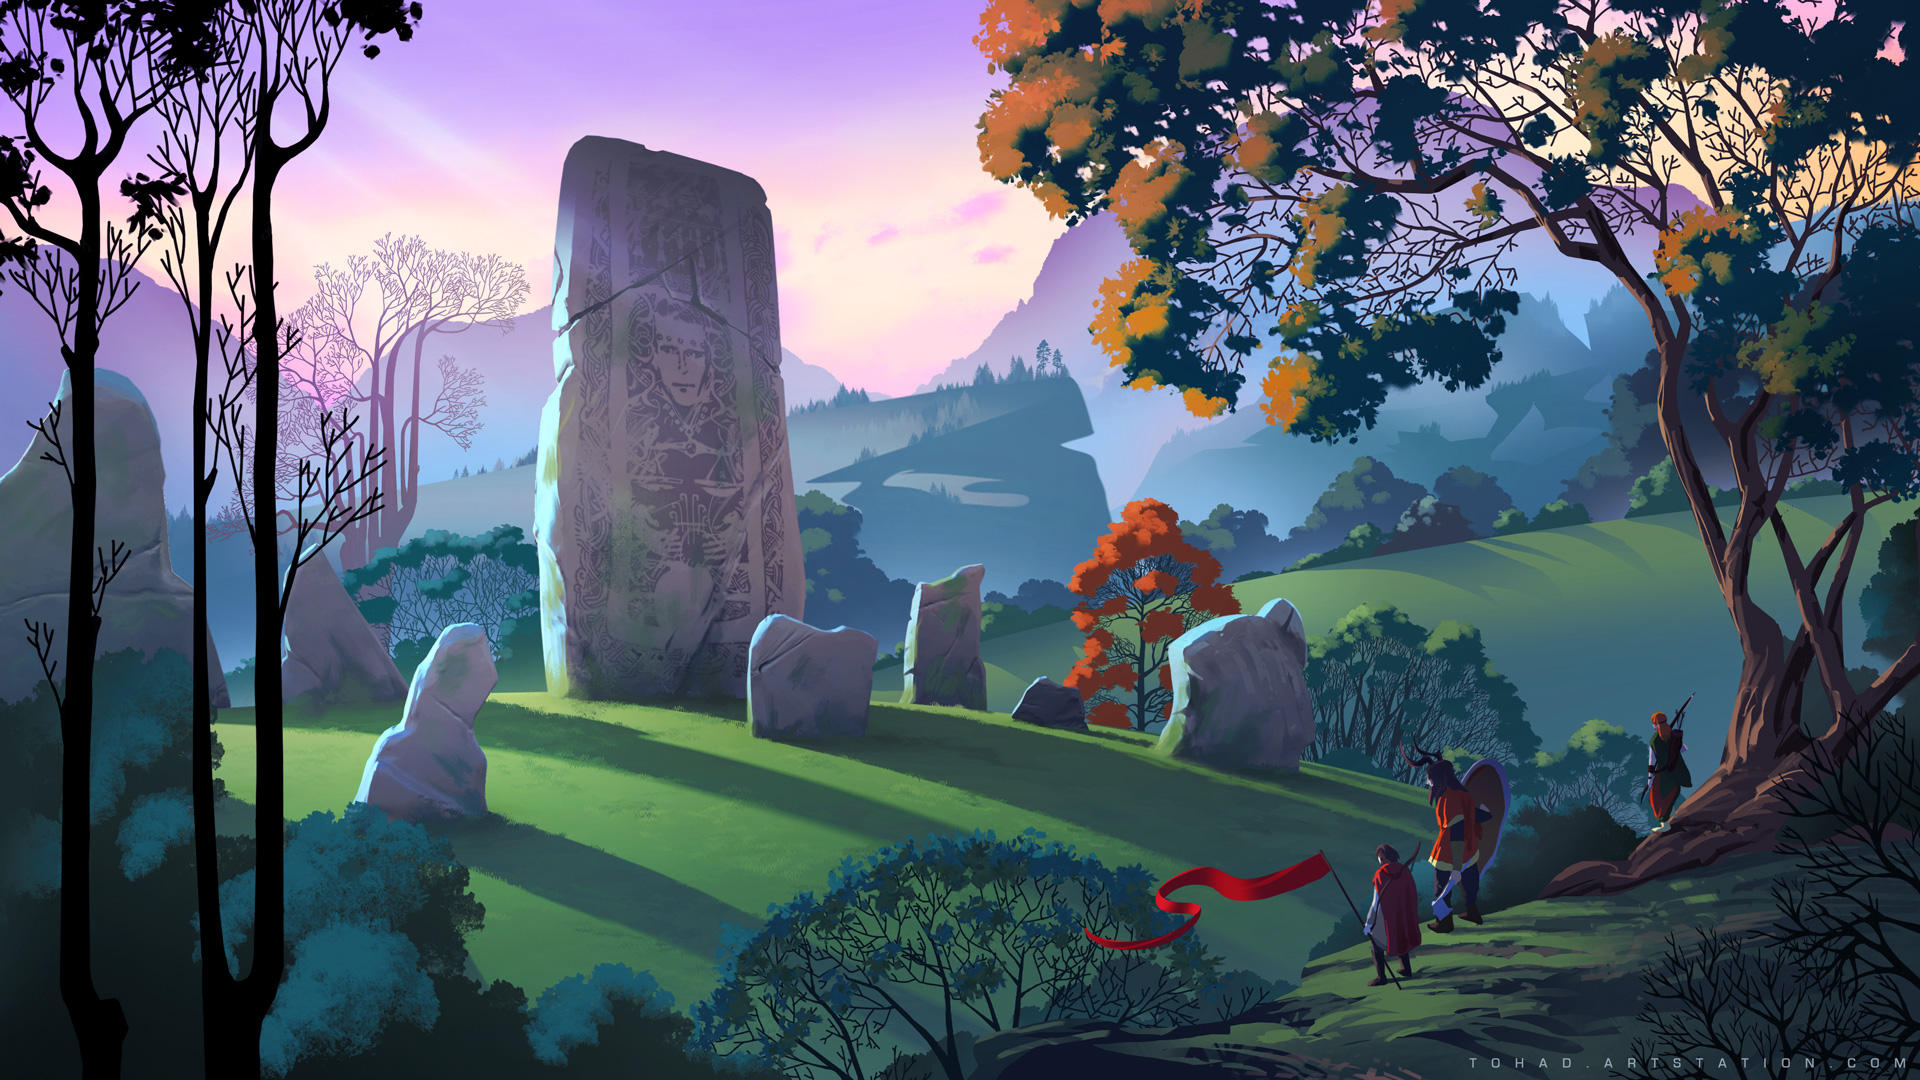 The Banner Saga Tribute by Tohad